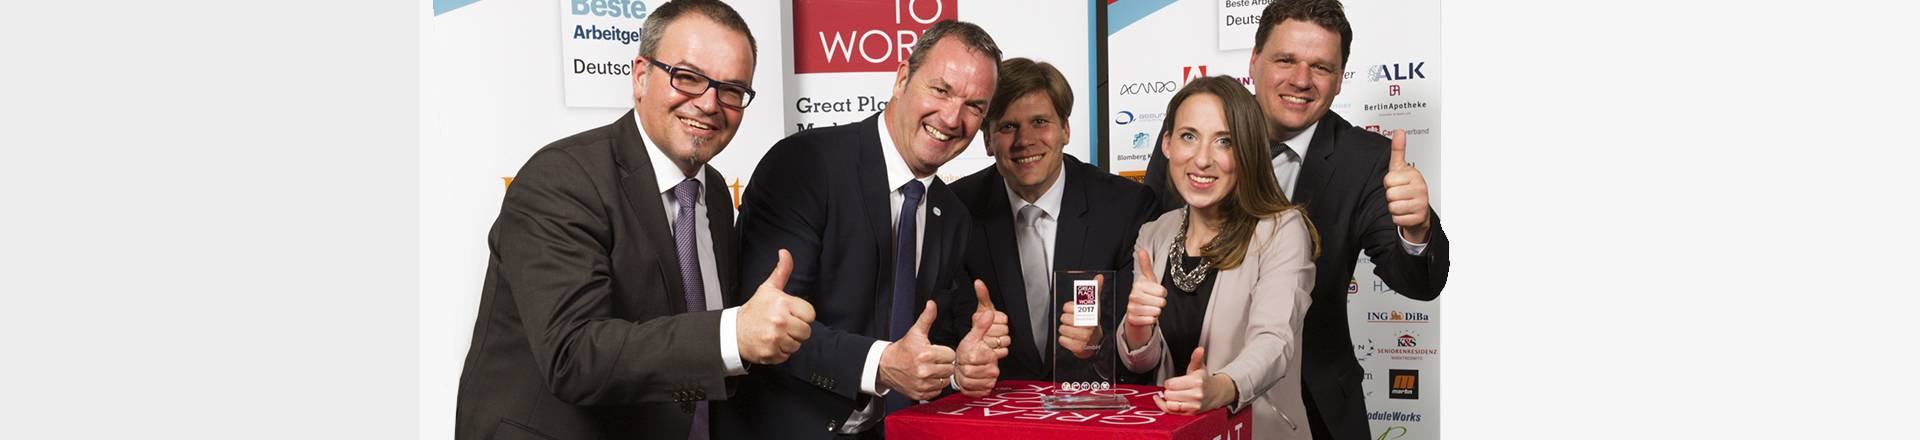 UWT gewinnt den Great Place to Work Award 2017